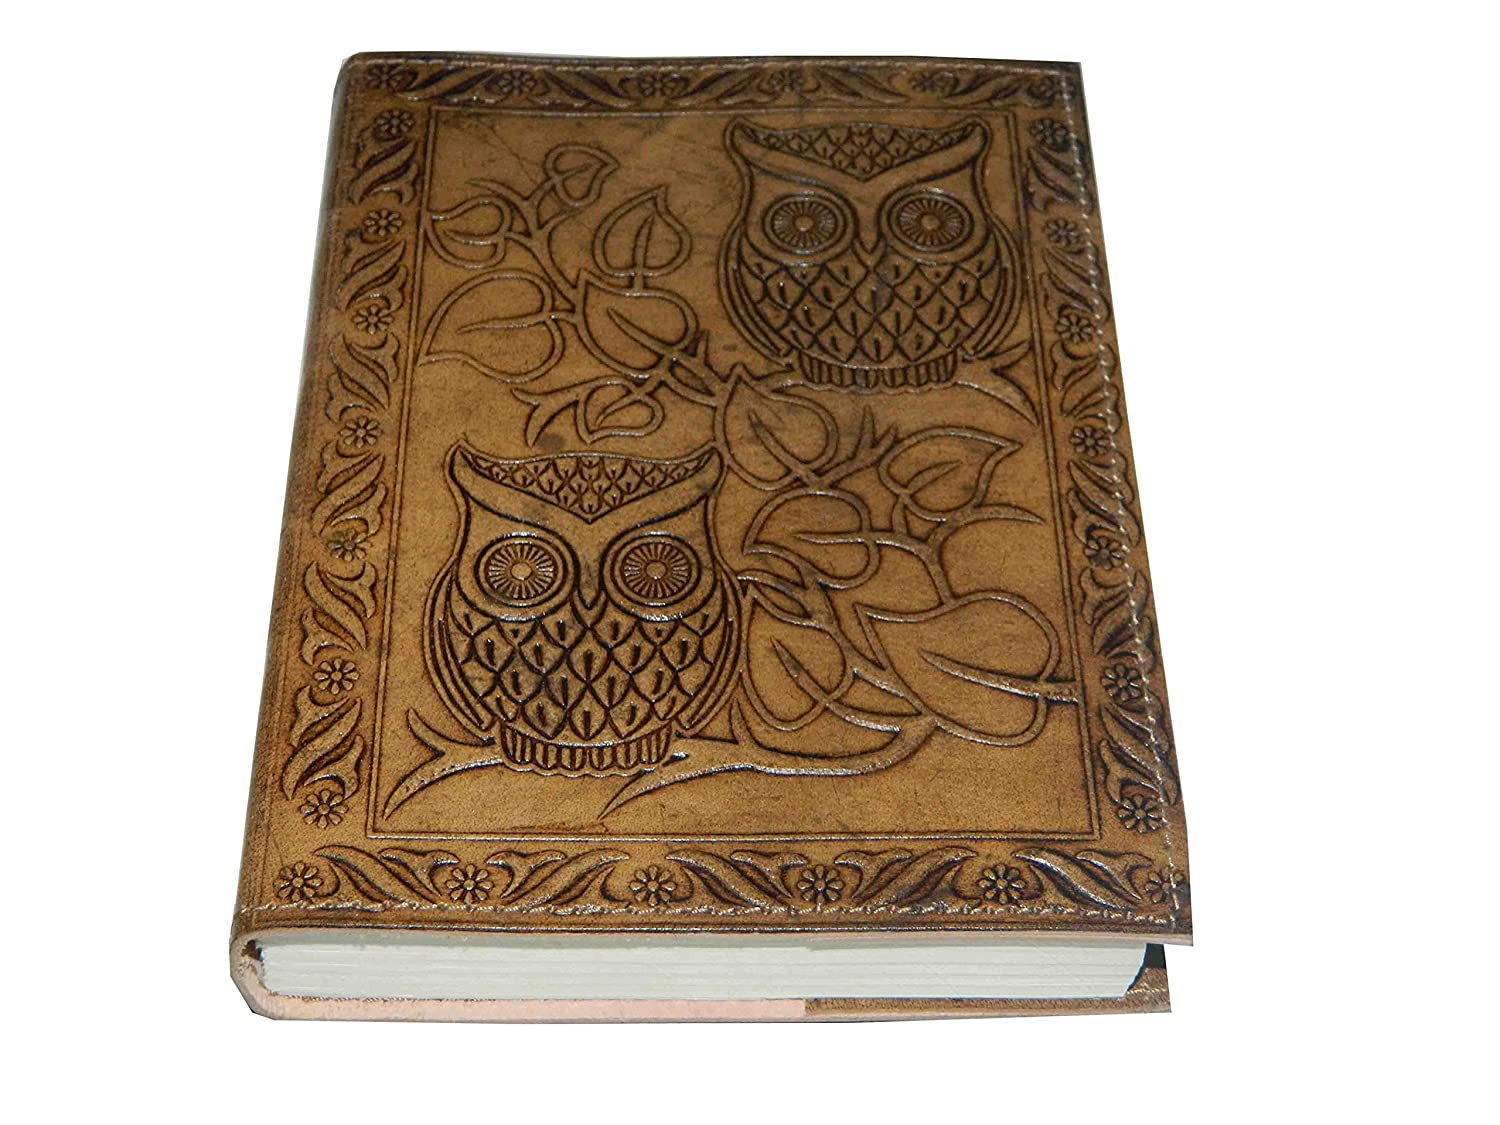 M&N Handmade Owl Embossed Leather Journal Pocket style Re-fillable 7x5 Blank Pages Tanned Color for Men and Women